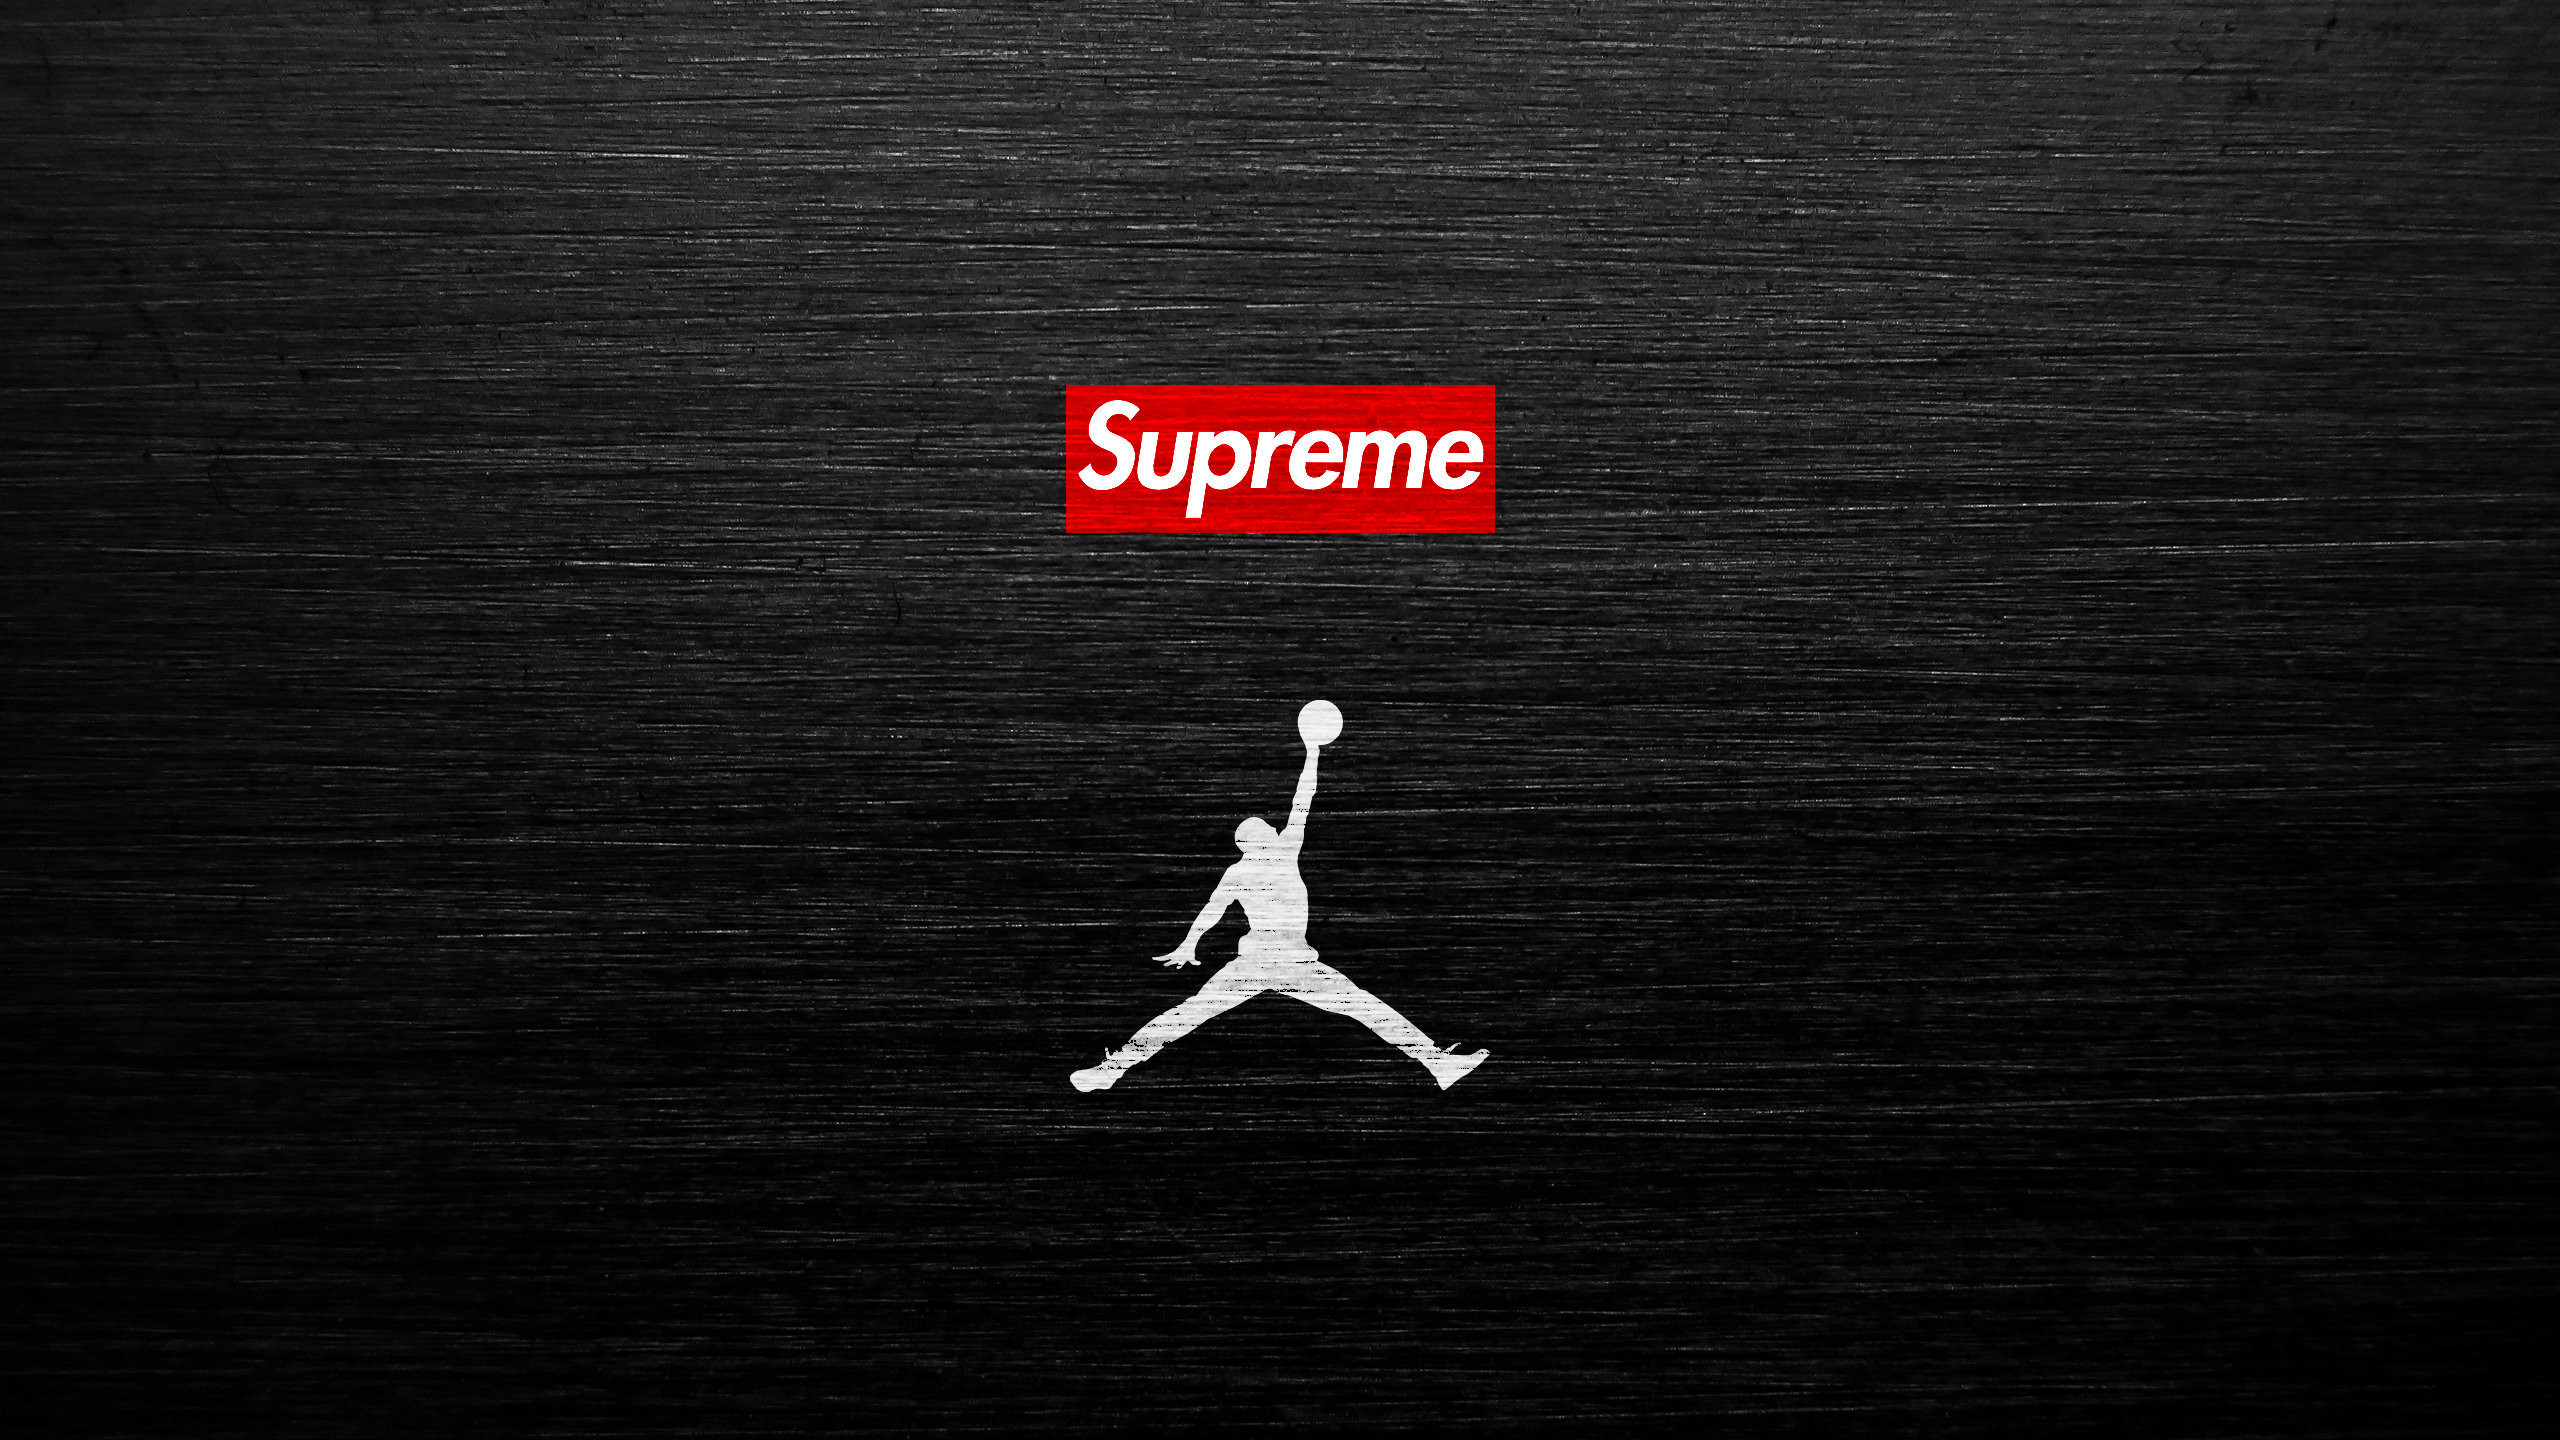 Res: 2560x1440, Download the Air Jordan Supreme wallpaper below for your mobile device  (Android phones, iPhone etc.)